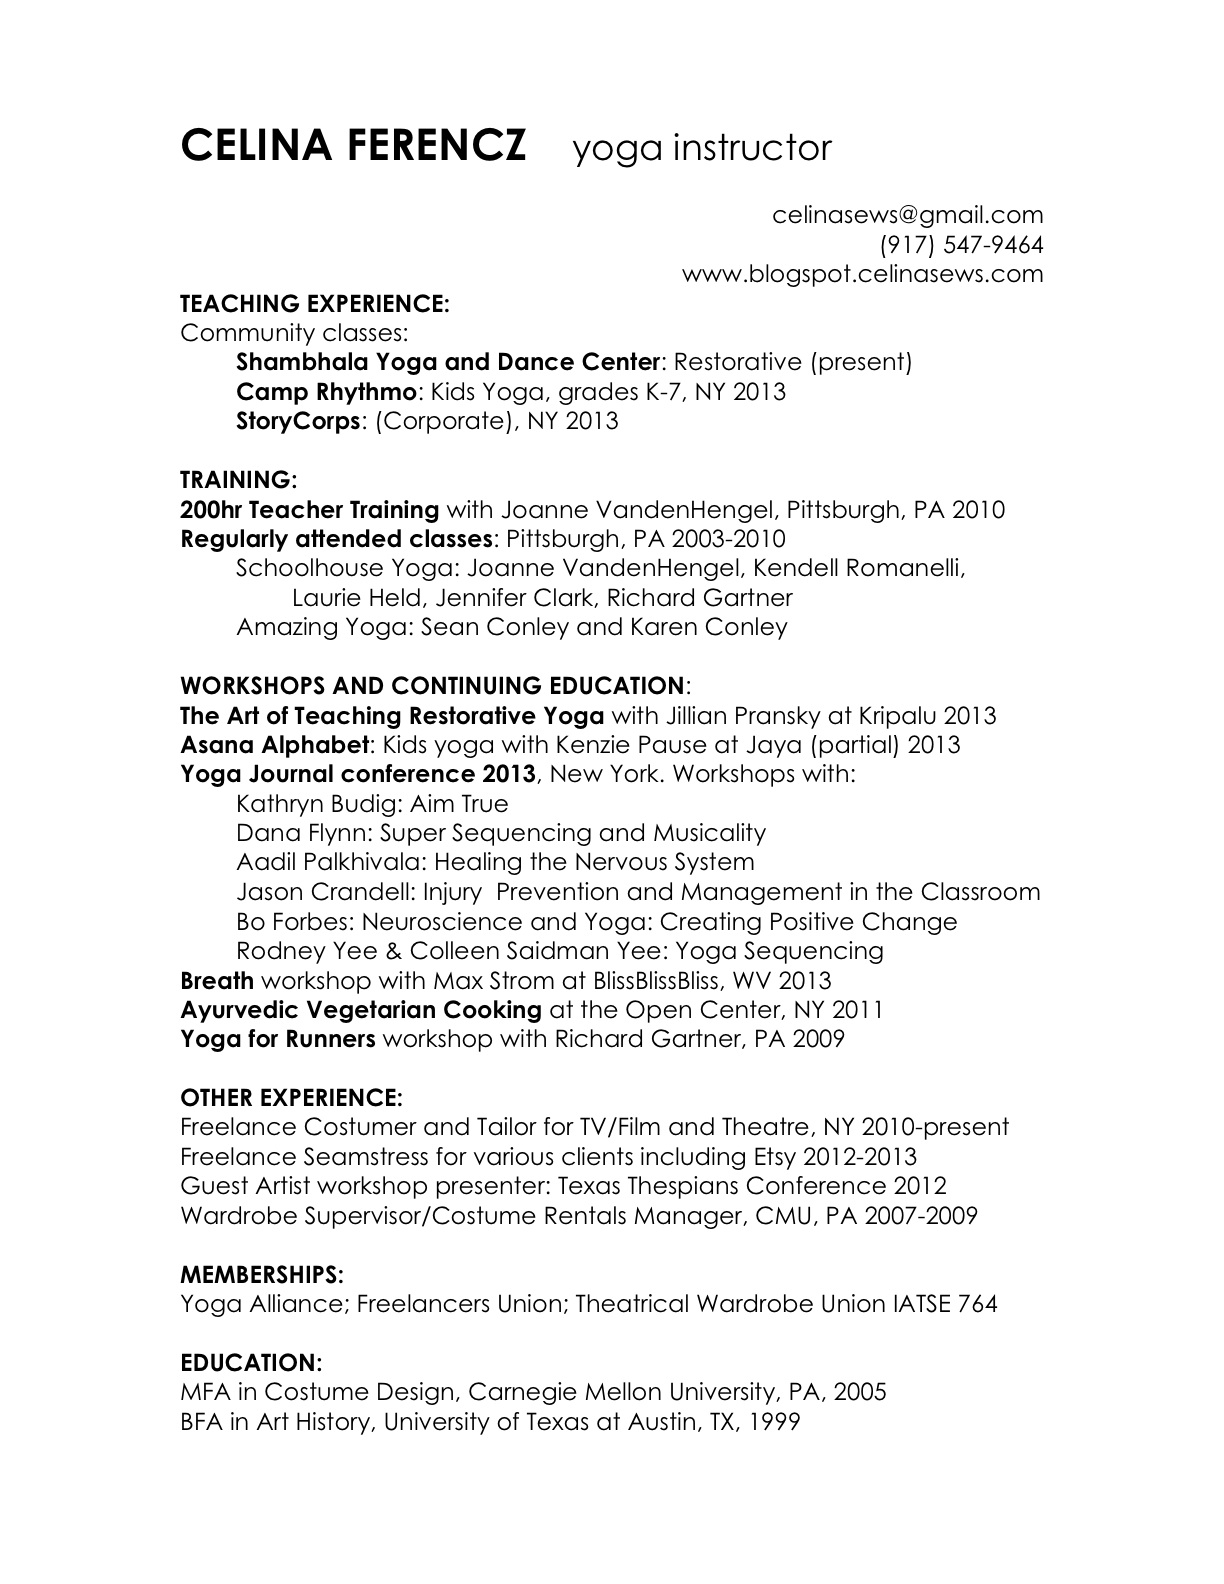 help me make my first resume how to write my the most important thing on your resume the executive summary rudy bellani pulse linkedin aaa aero